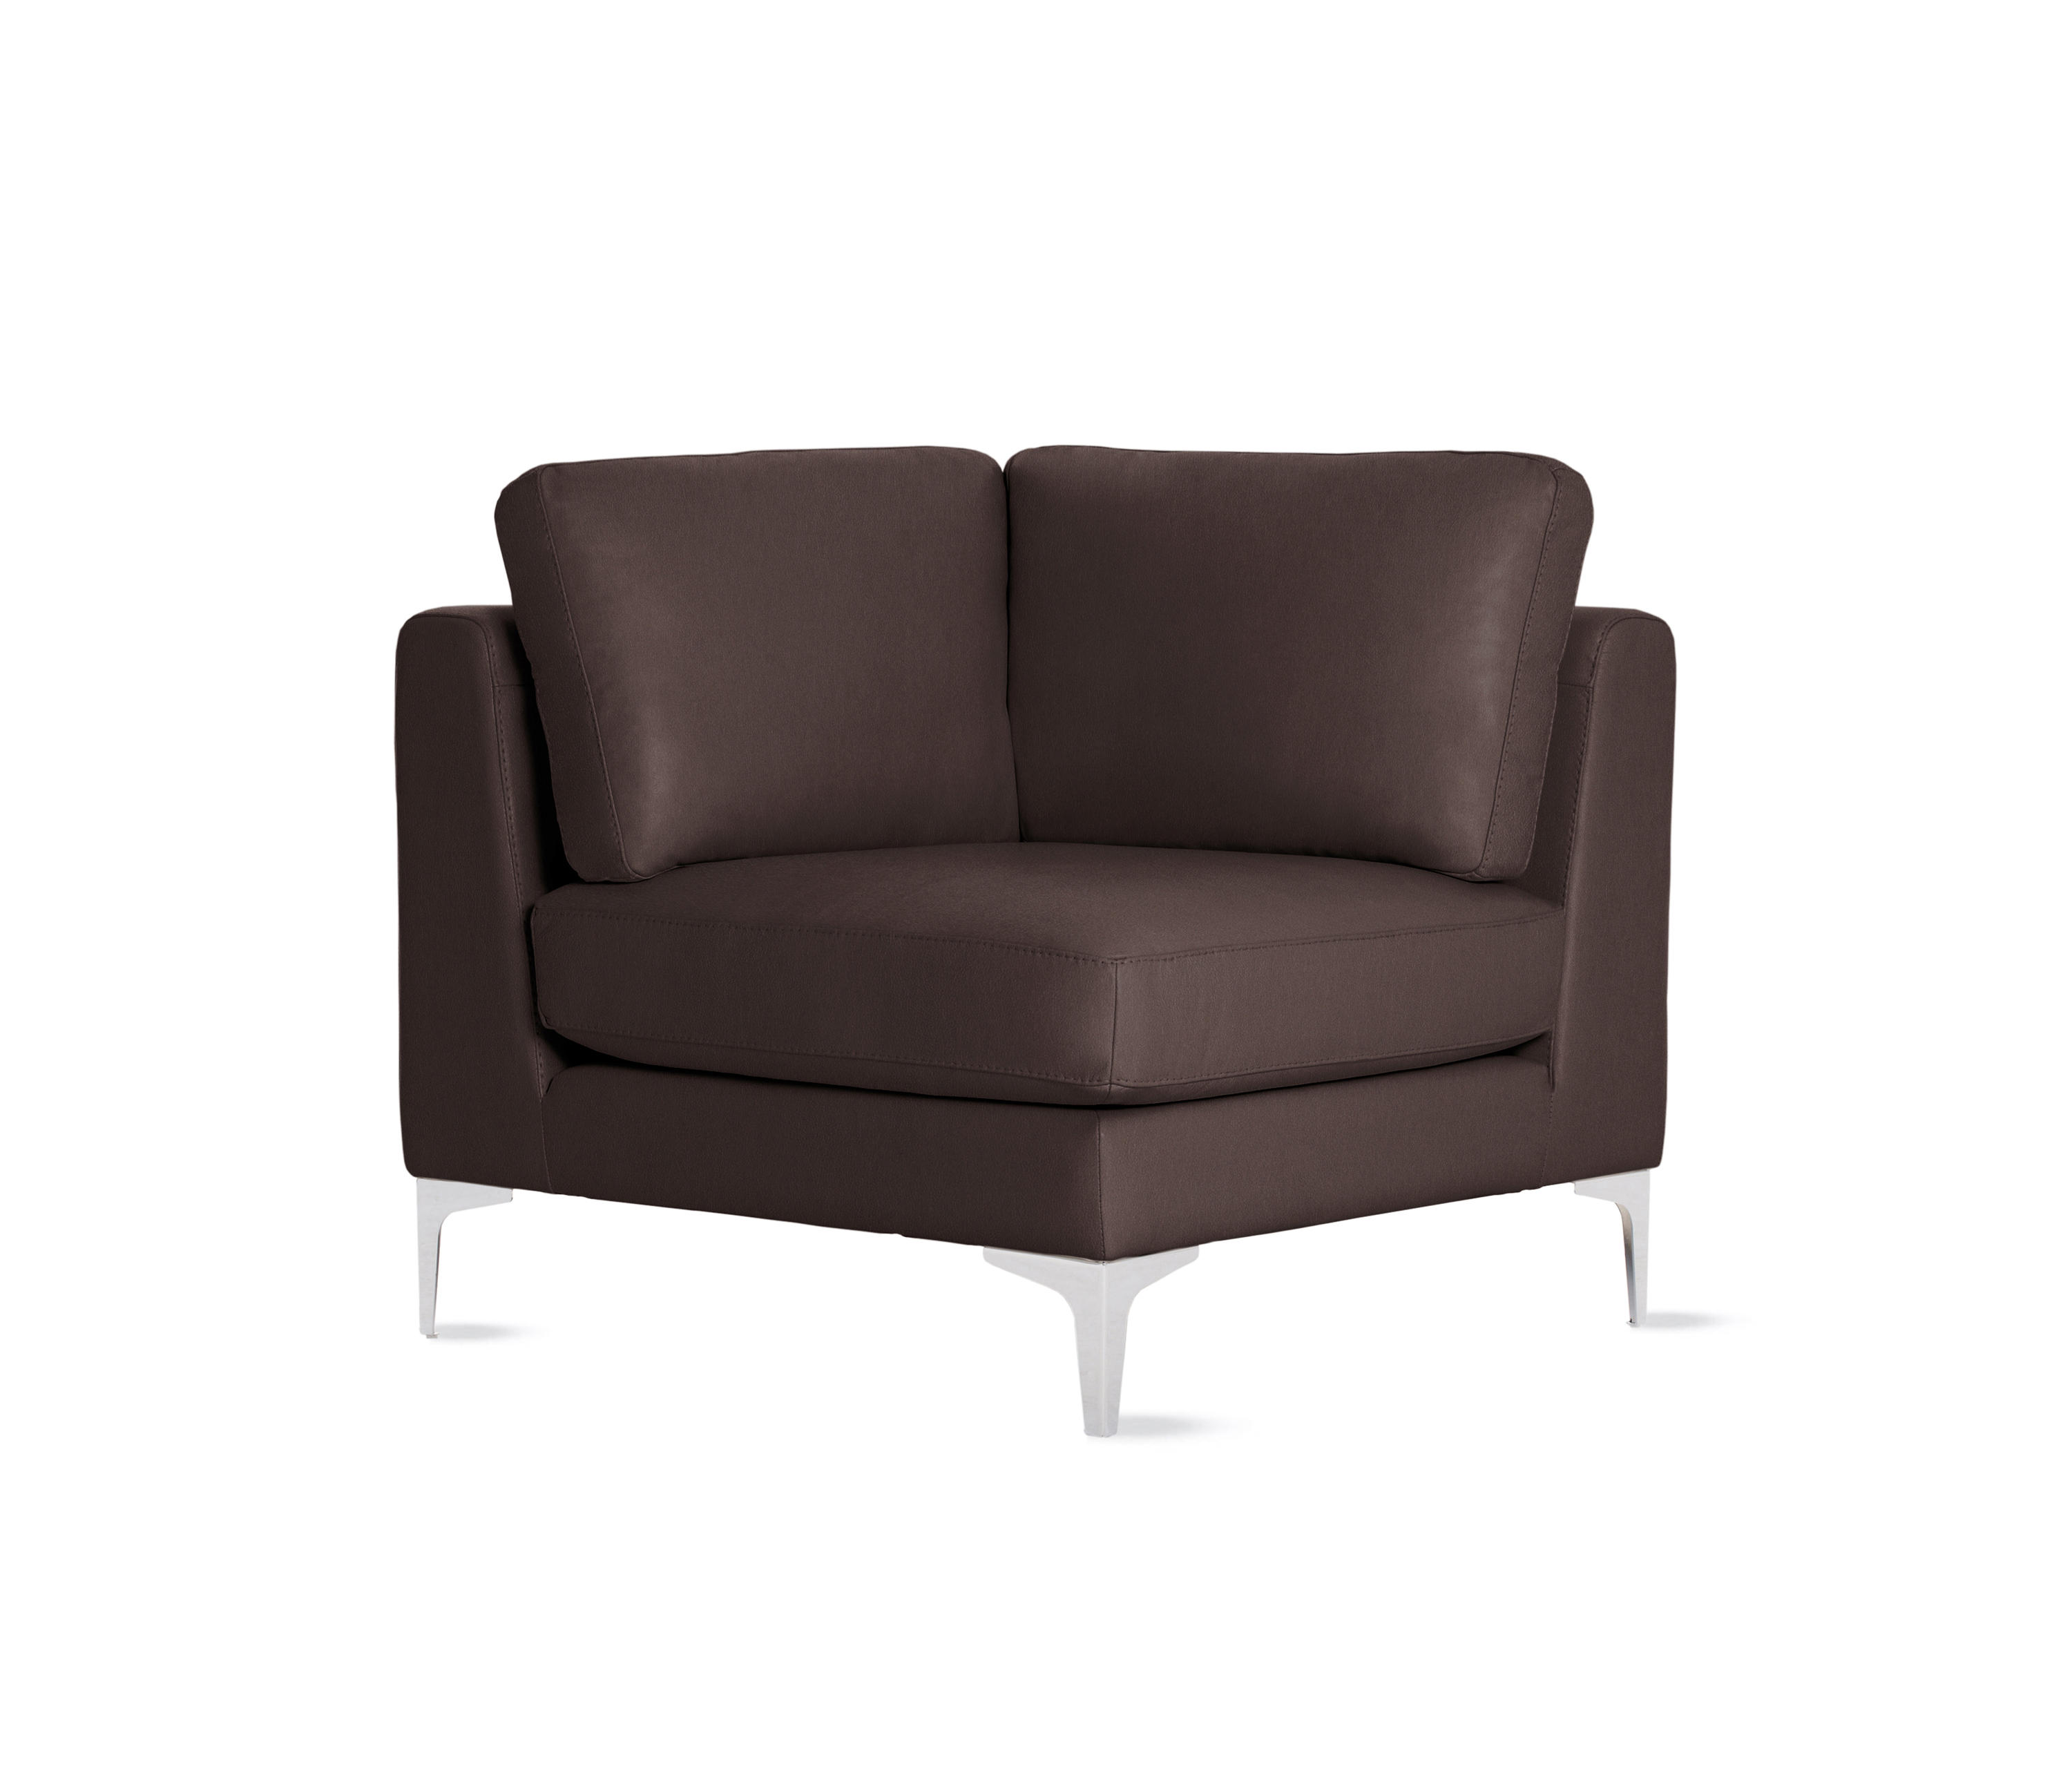 Chairs design within reach - Albert Corner In Leather By Design Within Reach Modular Seating Elements